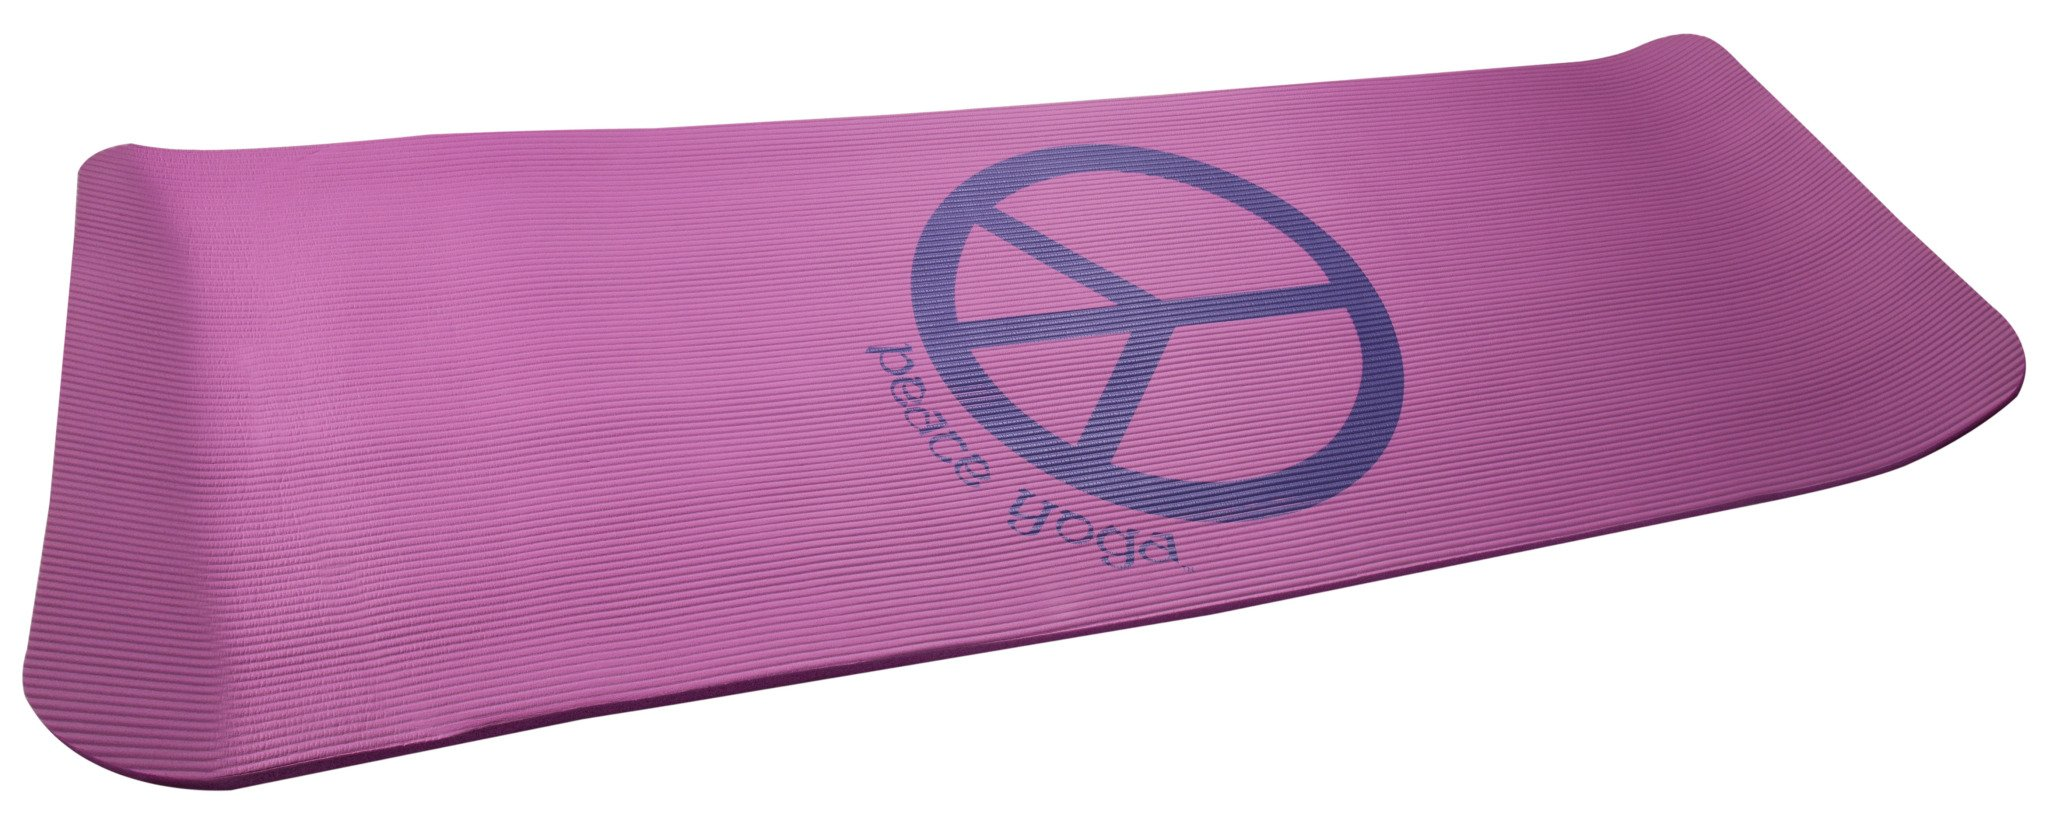 Peace Yoga Extra Thick NBR Exercise Mat - Choose Your Thickness (Pink Hemp, 0.50in Thick)